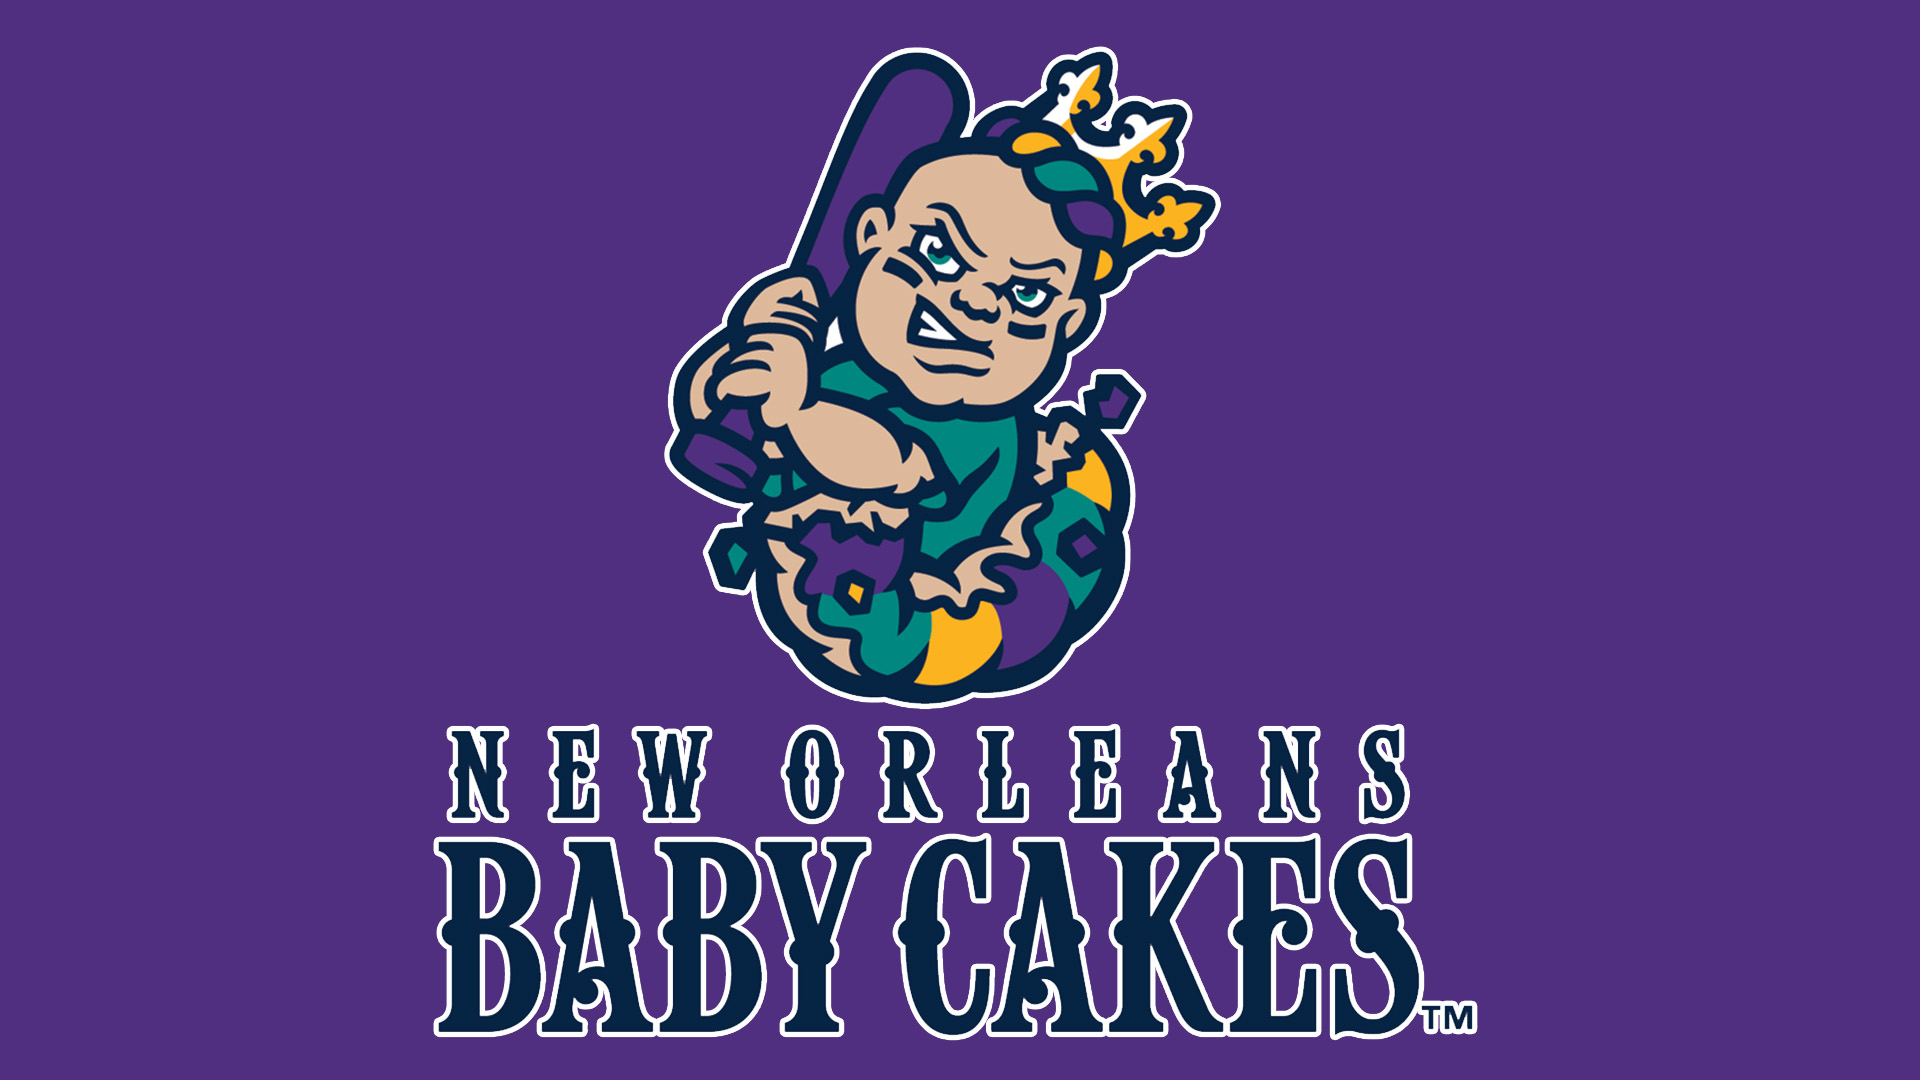 Meaning New Orleans Baby Cakes logo and symbol.